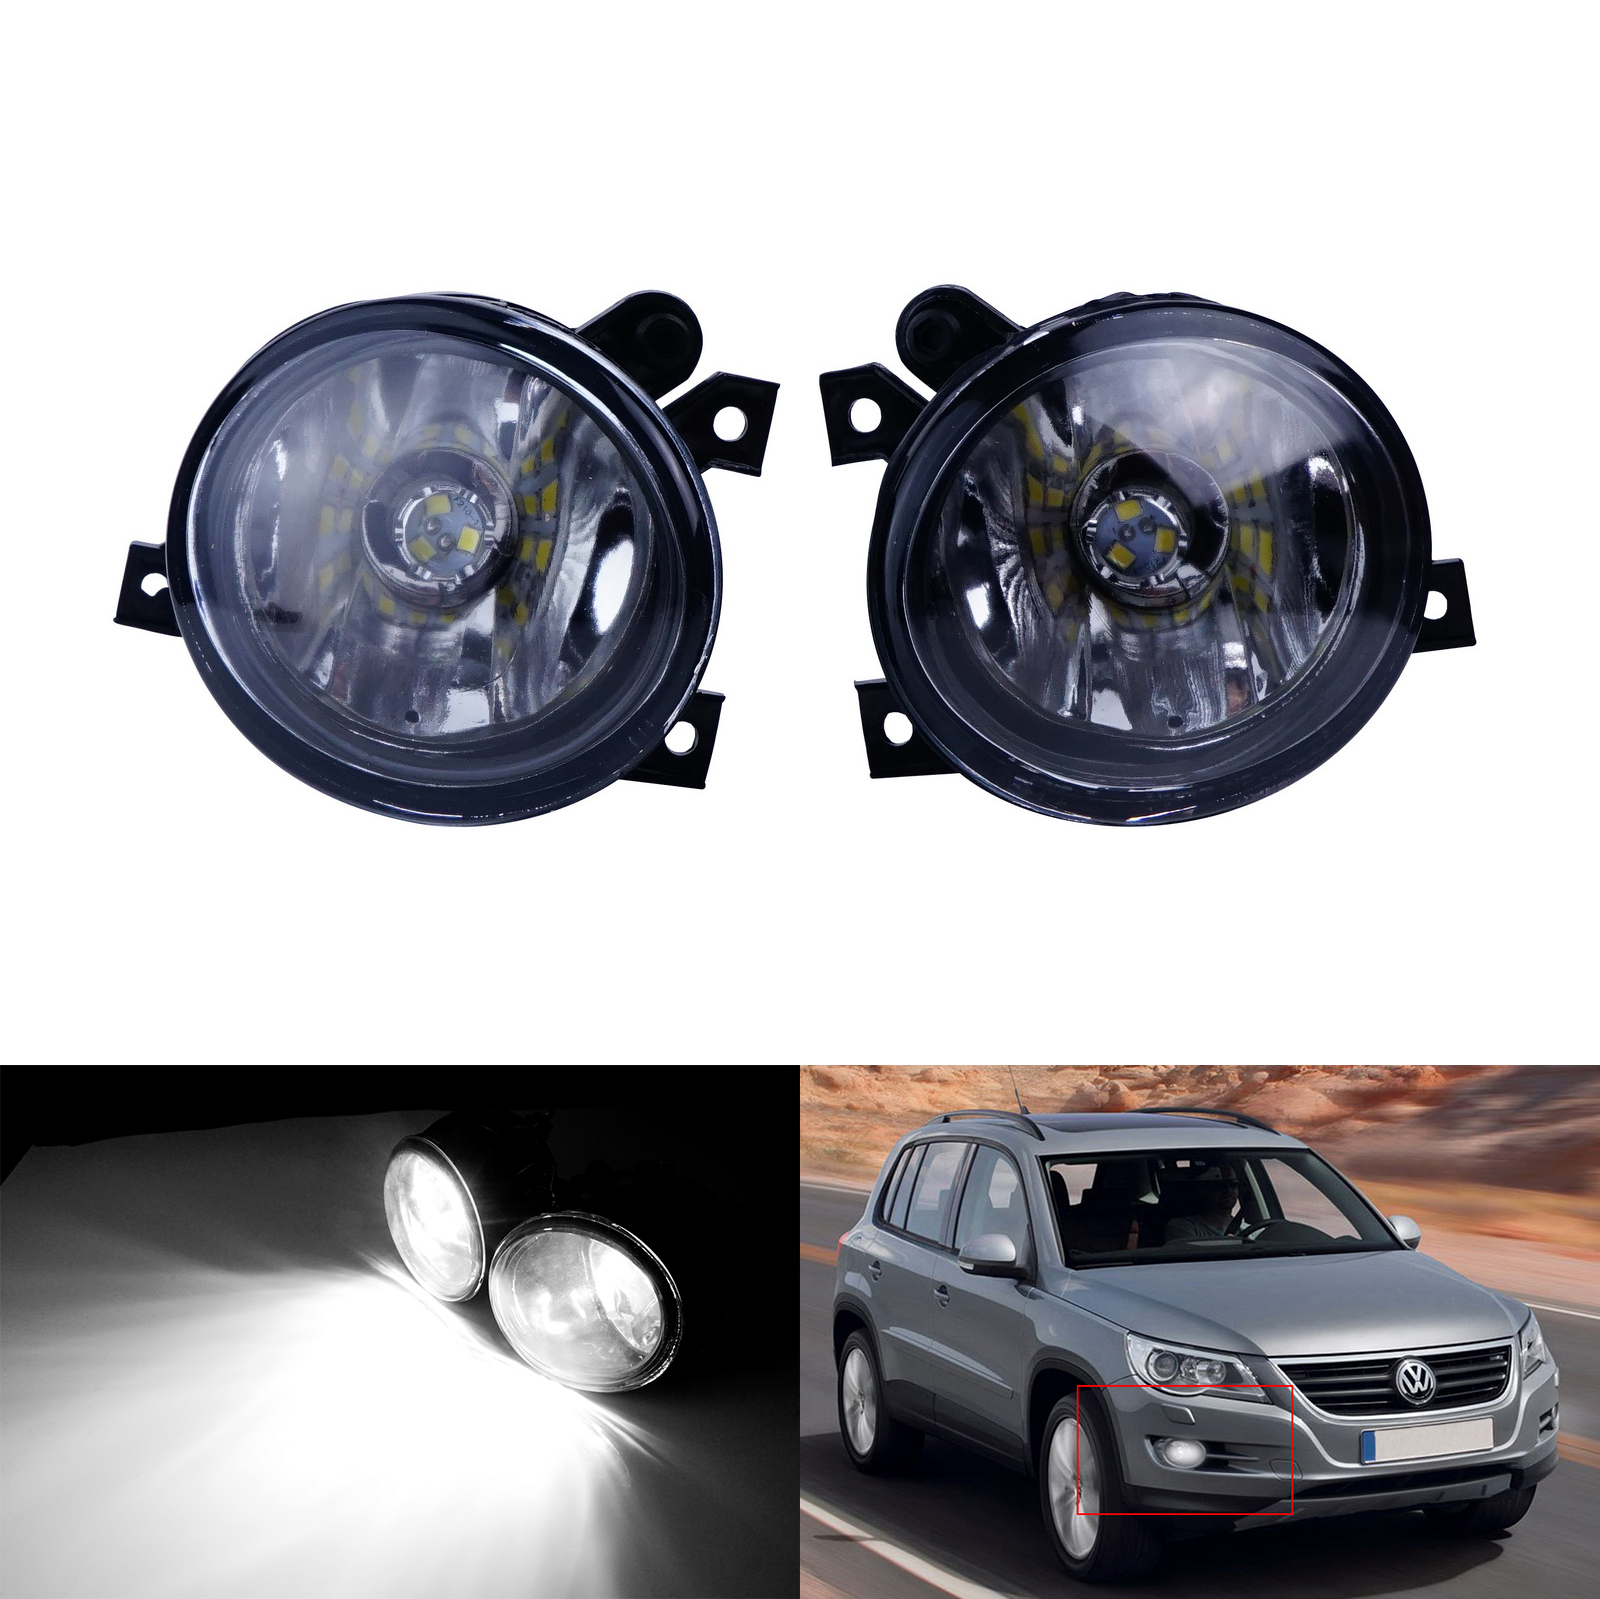 ANGRONG Front Fog <font><b>Light</b></font> 30W <font><b>LED</b></font> Bulb N/S & O/S For <font><b>VW</b></font> <font><b>Golf</b></font> <font><b>MK5</b></font> Caddy Scirocco Tiguan image